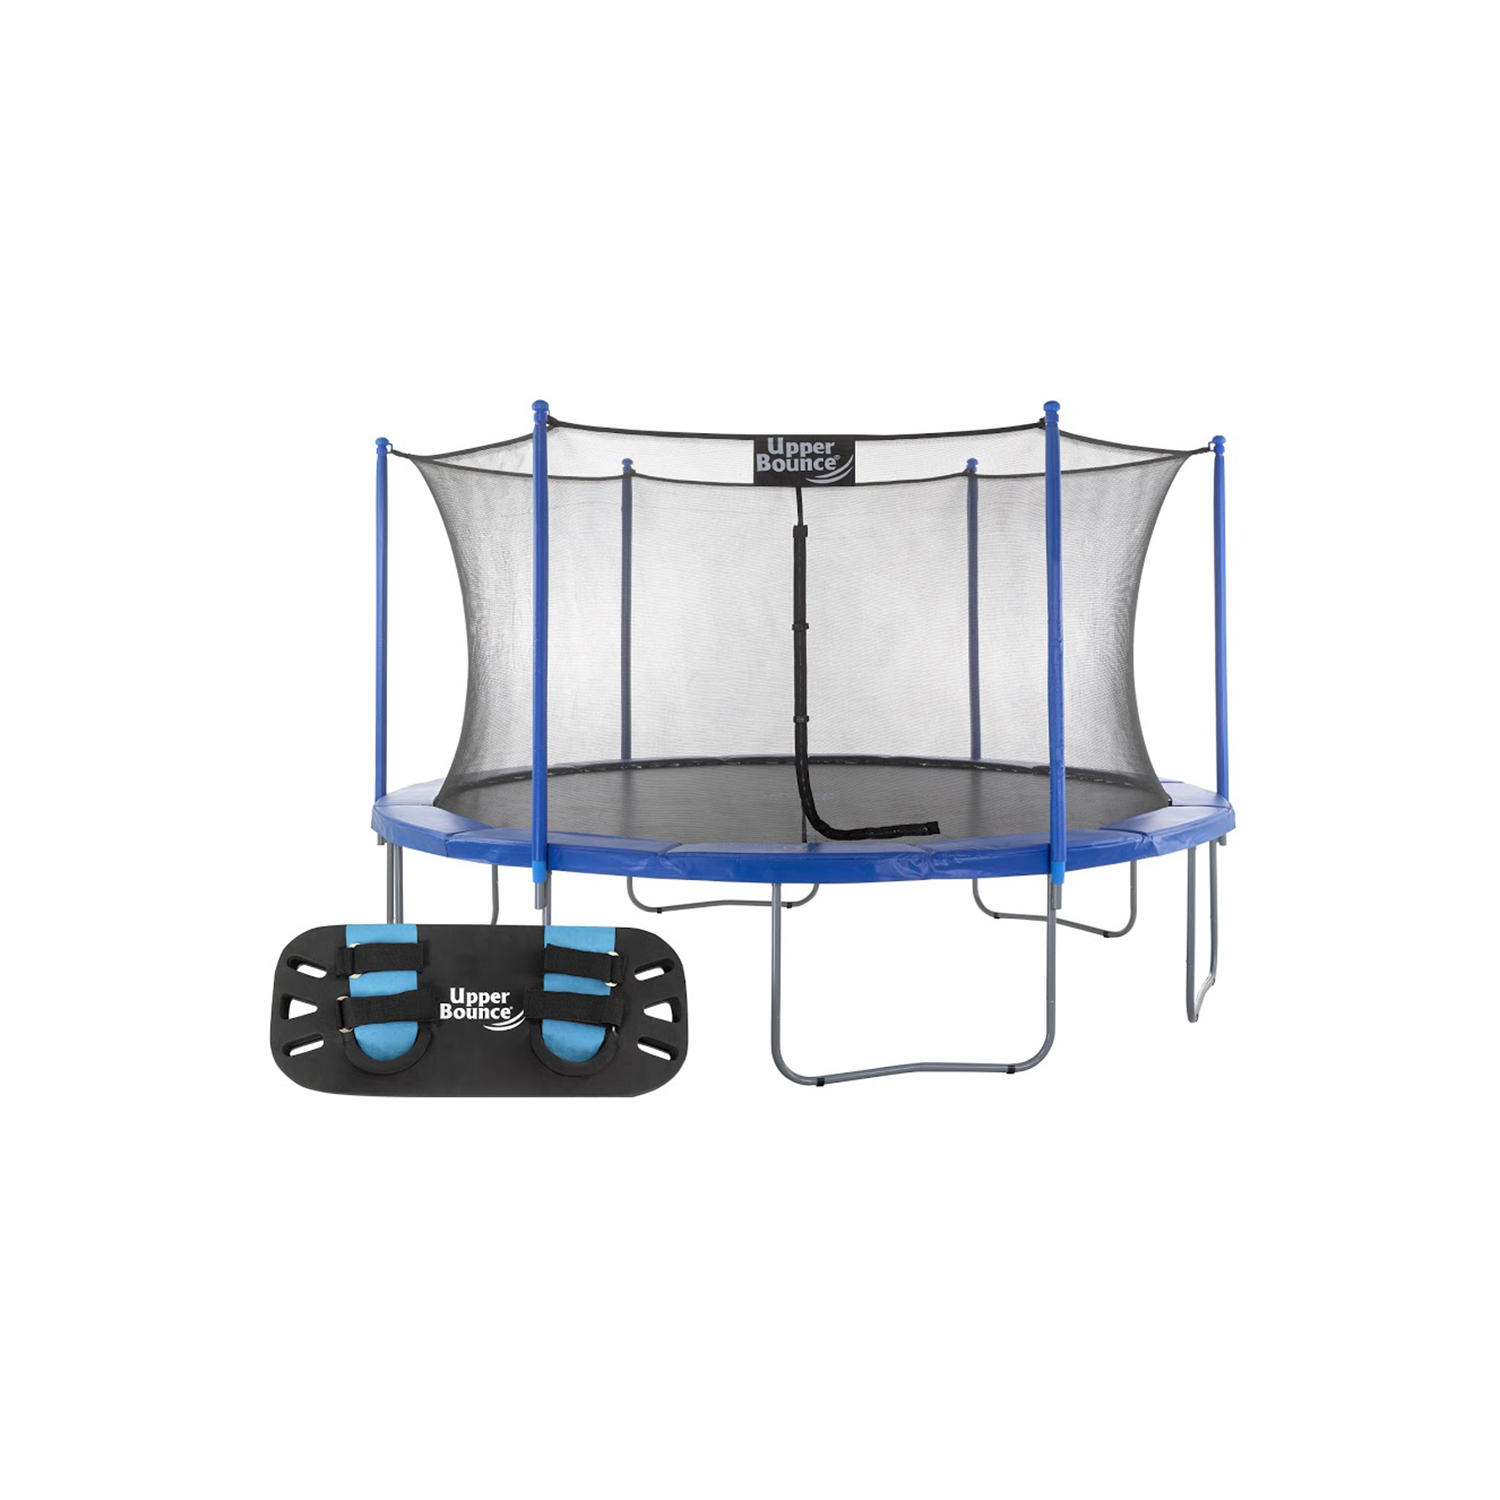 Upper Bounce 16′ Round trampoline with Trampoline Jumping Skate